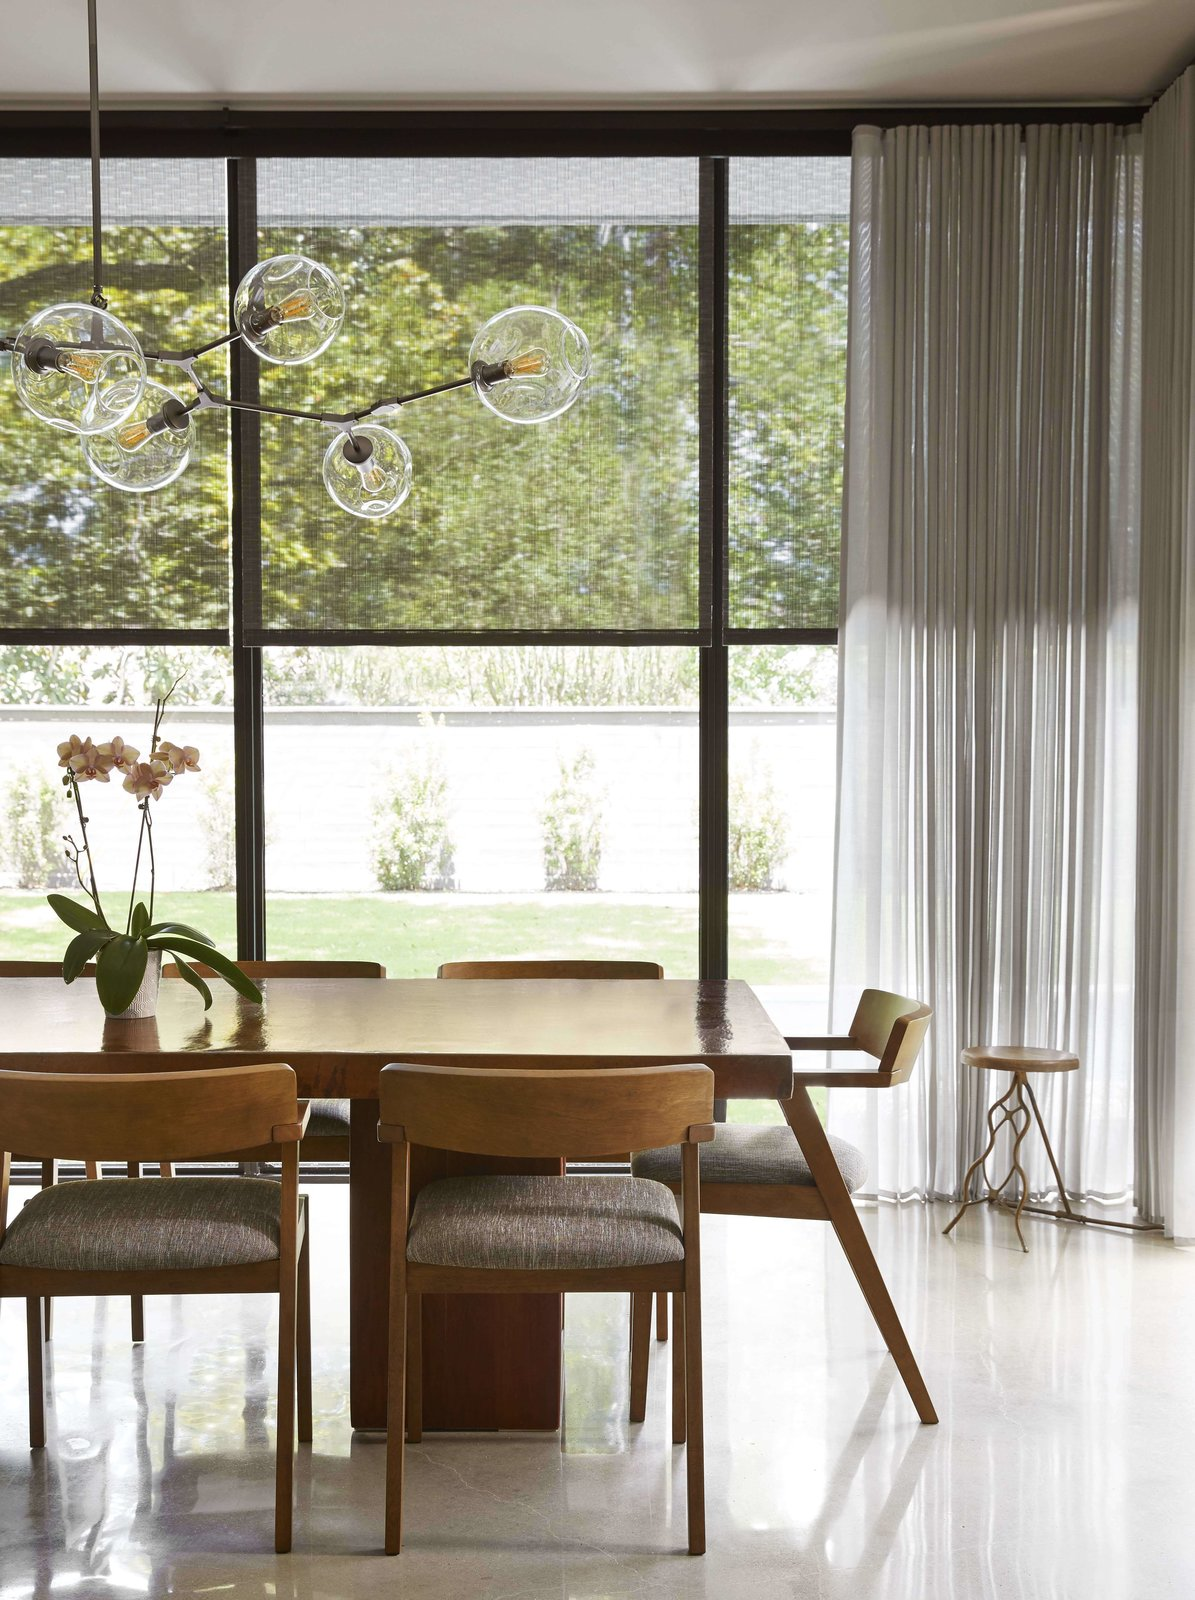 Photo 2 of 3 in Modern Shades and Draperies Integrate Seamlessly Into a Houston Renovation